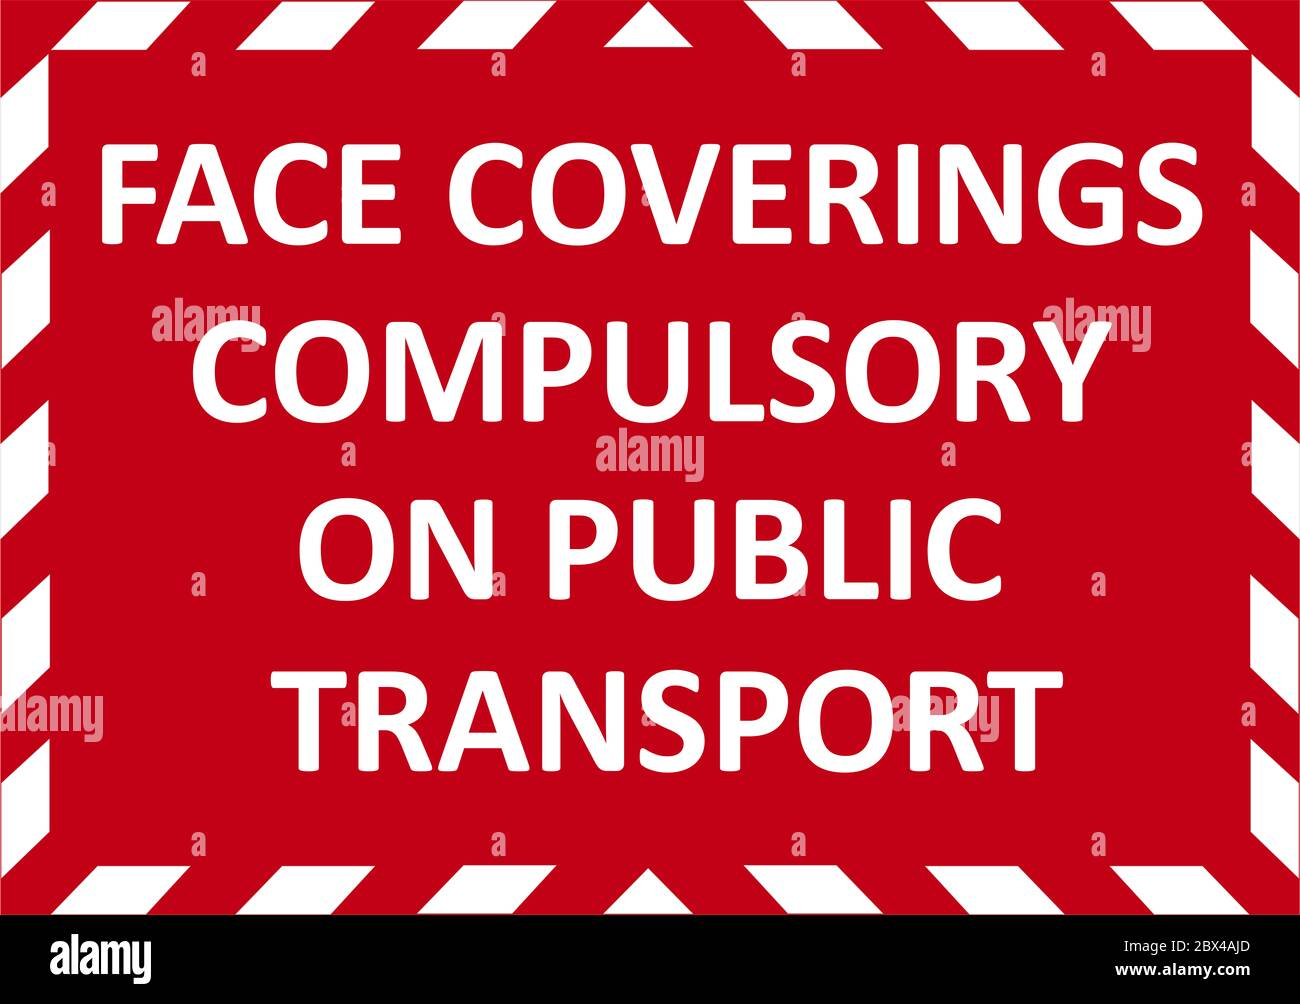 FACE COVERINGS COMPULSORY ON PUBLIC TRANSPORT warning sign. Red quarantine sign that help to battle against Covid-19 in the UK. RASTER. Stock Photo